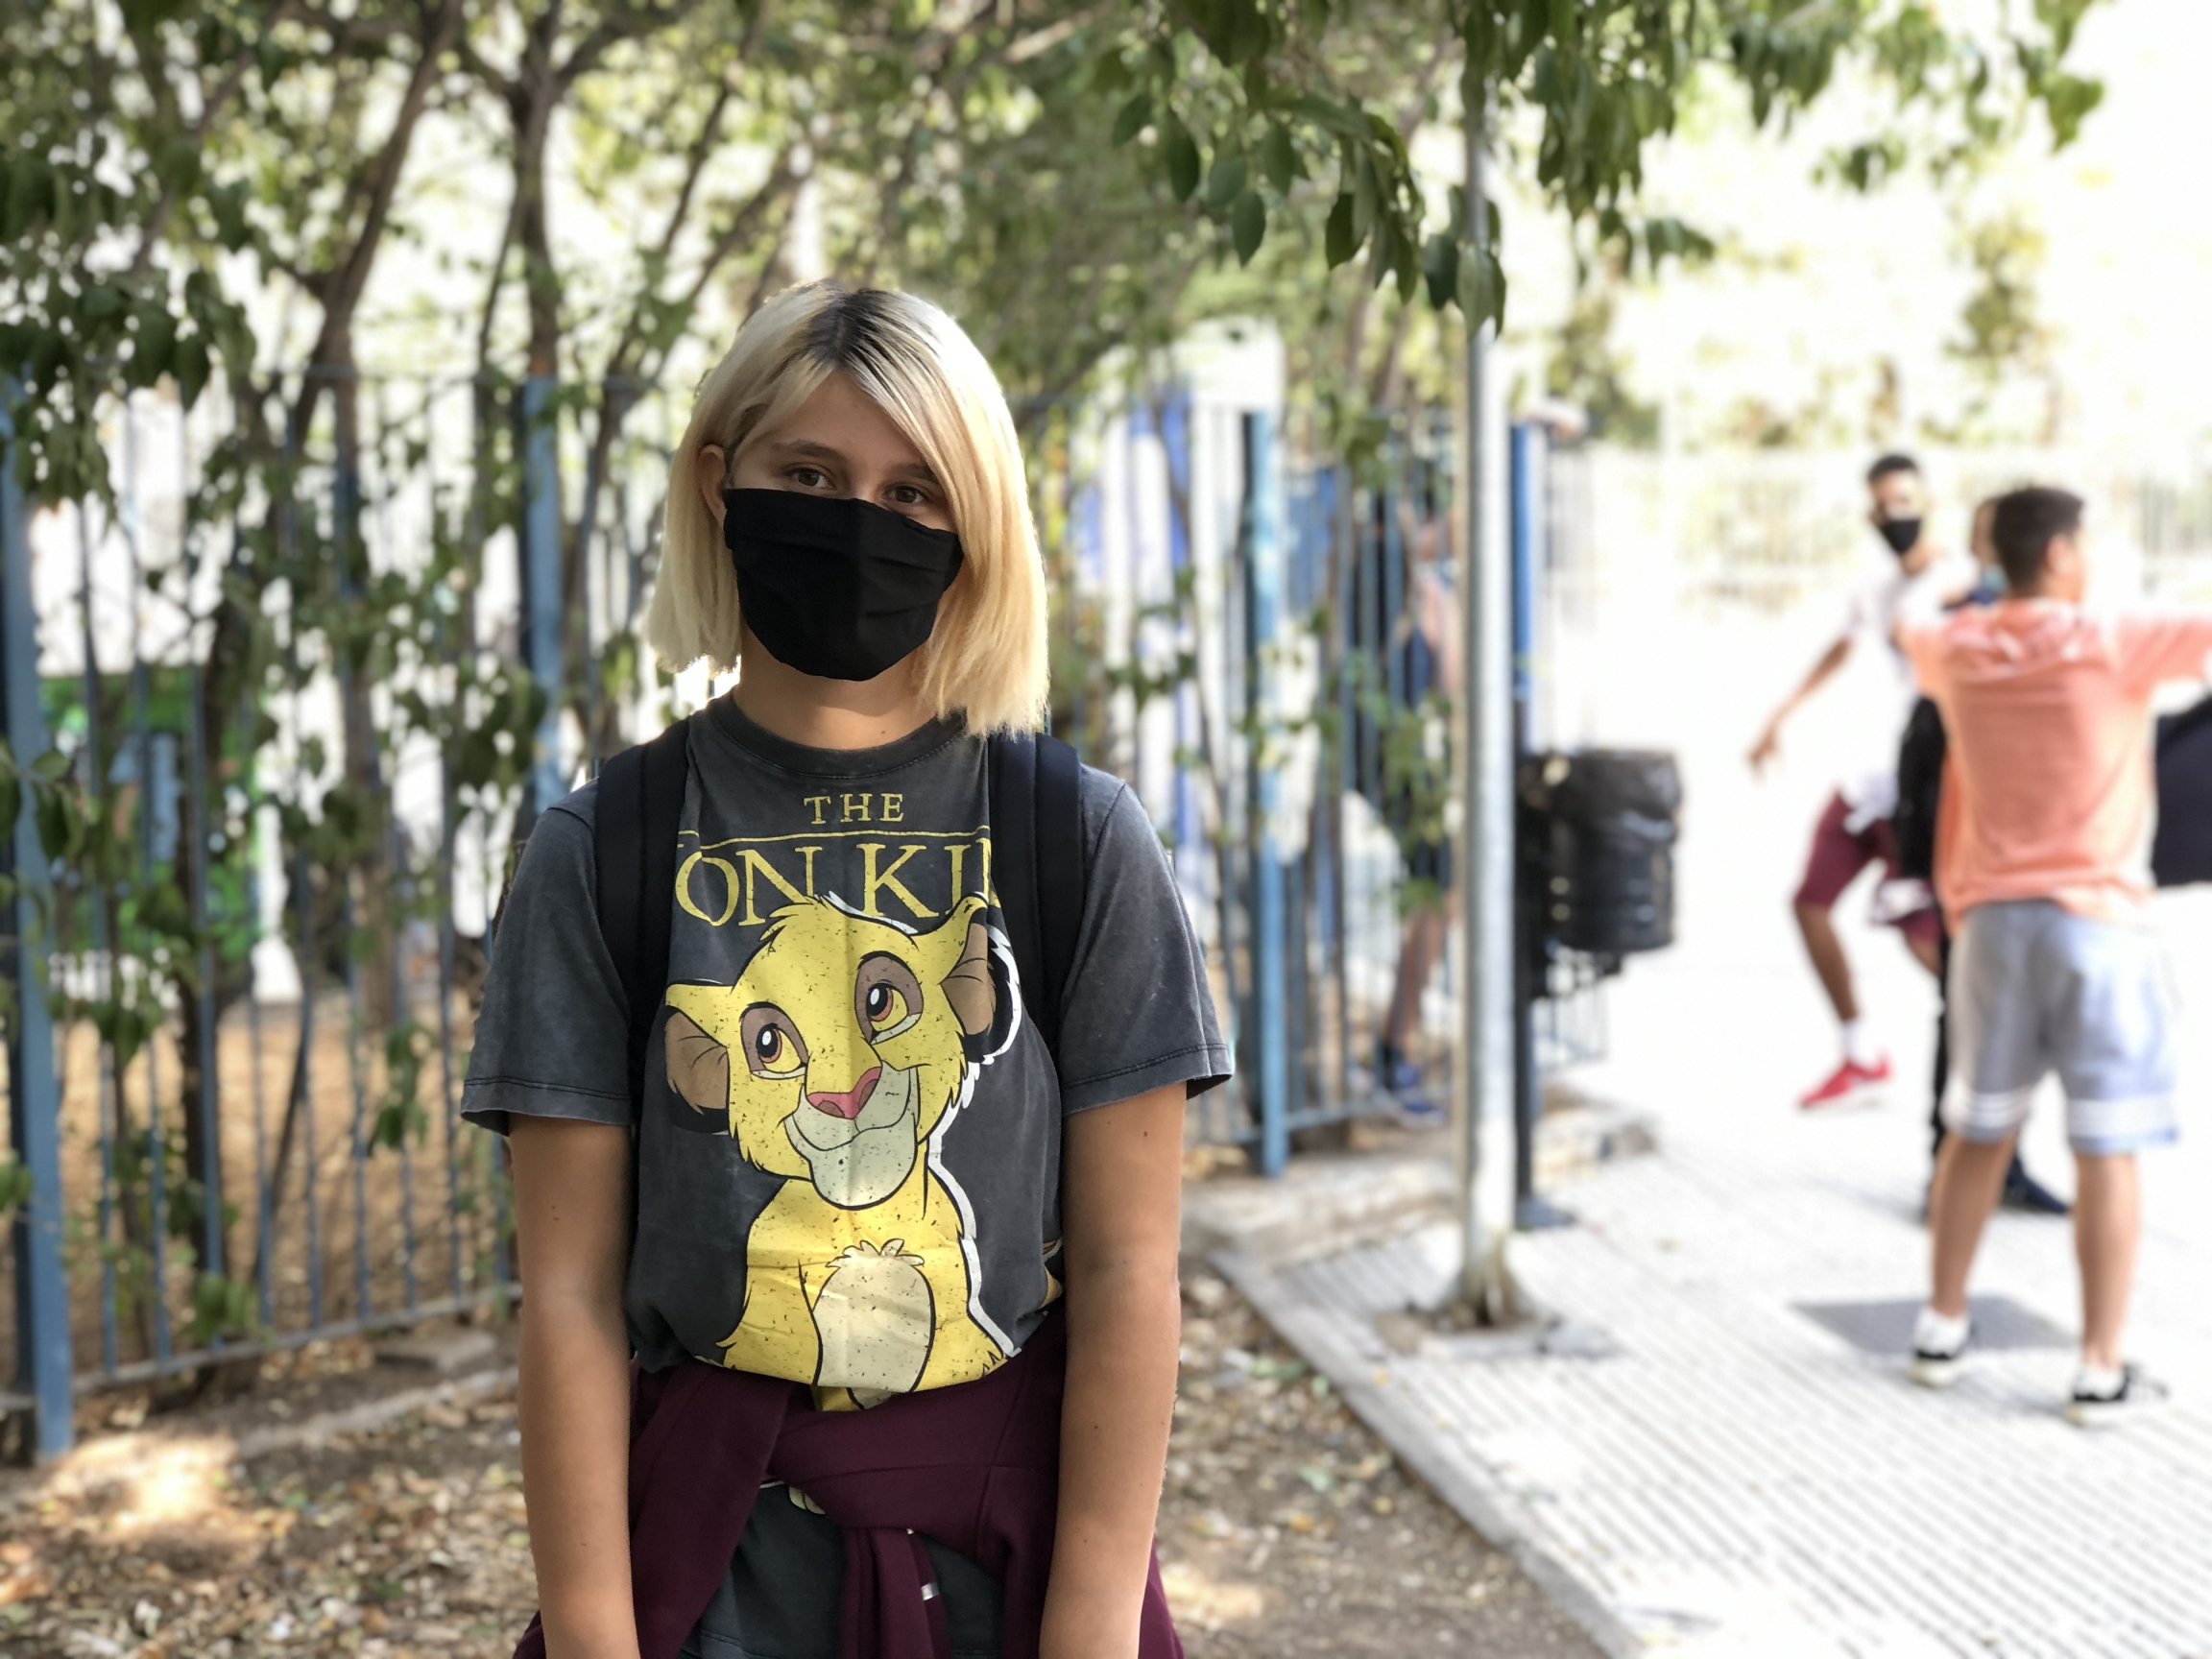 Efremia Kalogirou, a senior at the 5th Public High School of Egaleo, says she has a teacher who doesn't believe in wearing masks and won't do so in the classroom, even though he's required to. When she tried to talk to him about it, he dismissed her.